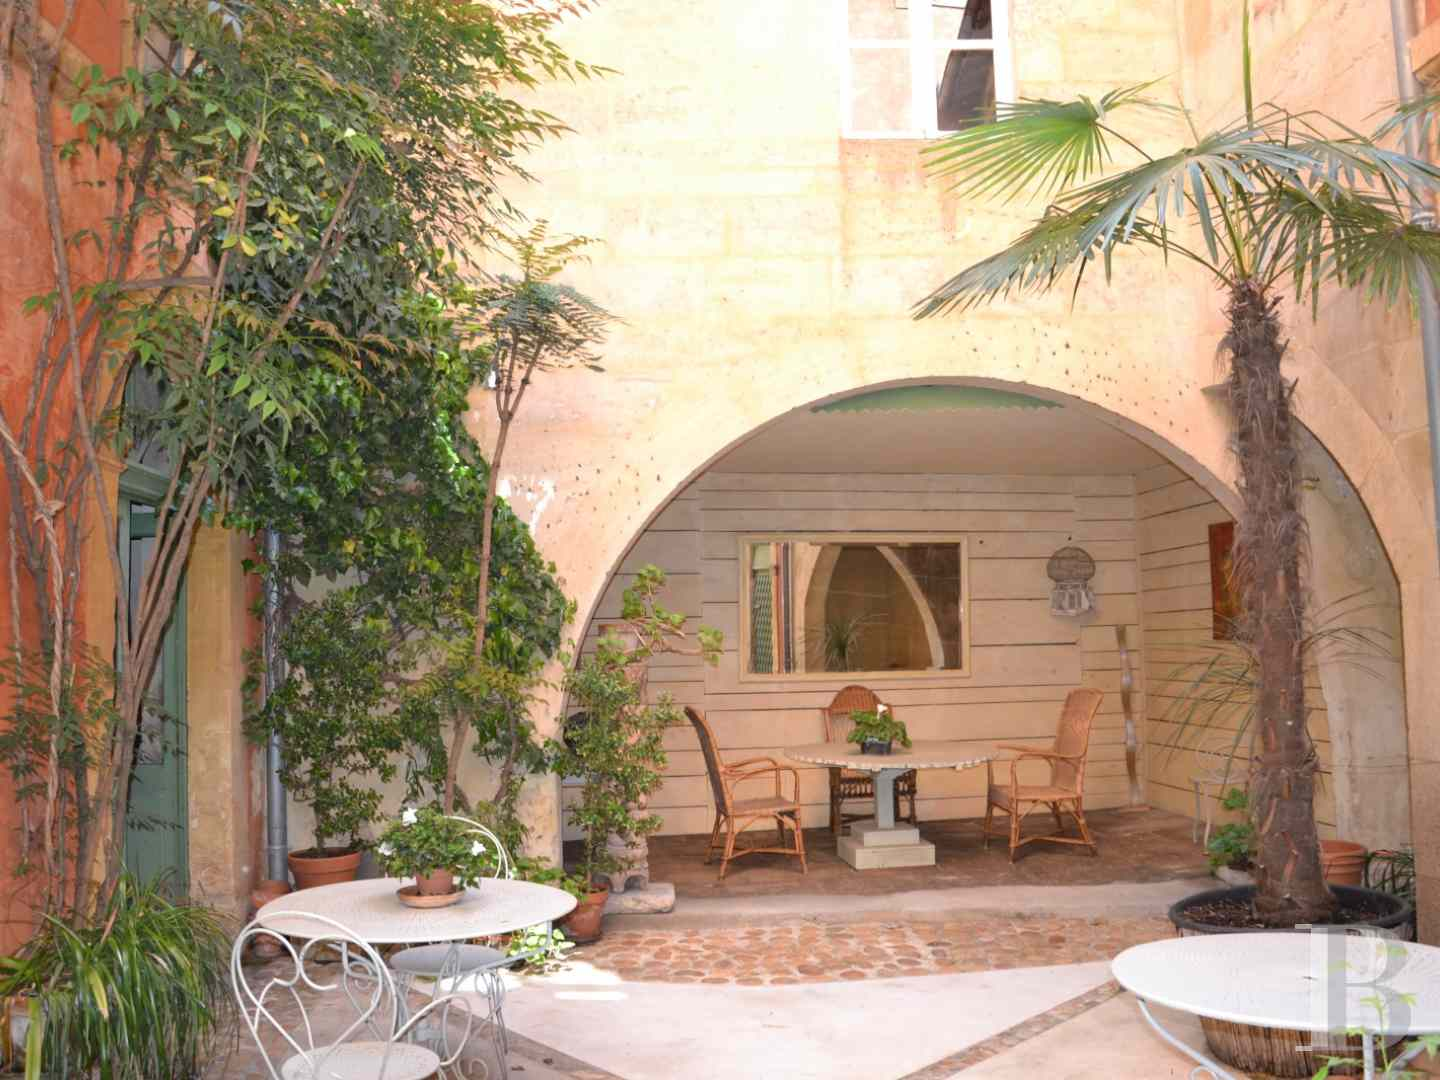 property for sale France languedoc roussillon residences mansion - 1 zoom